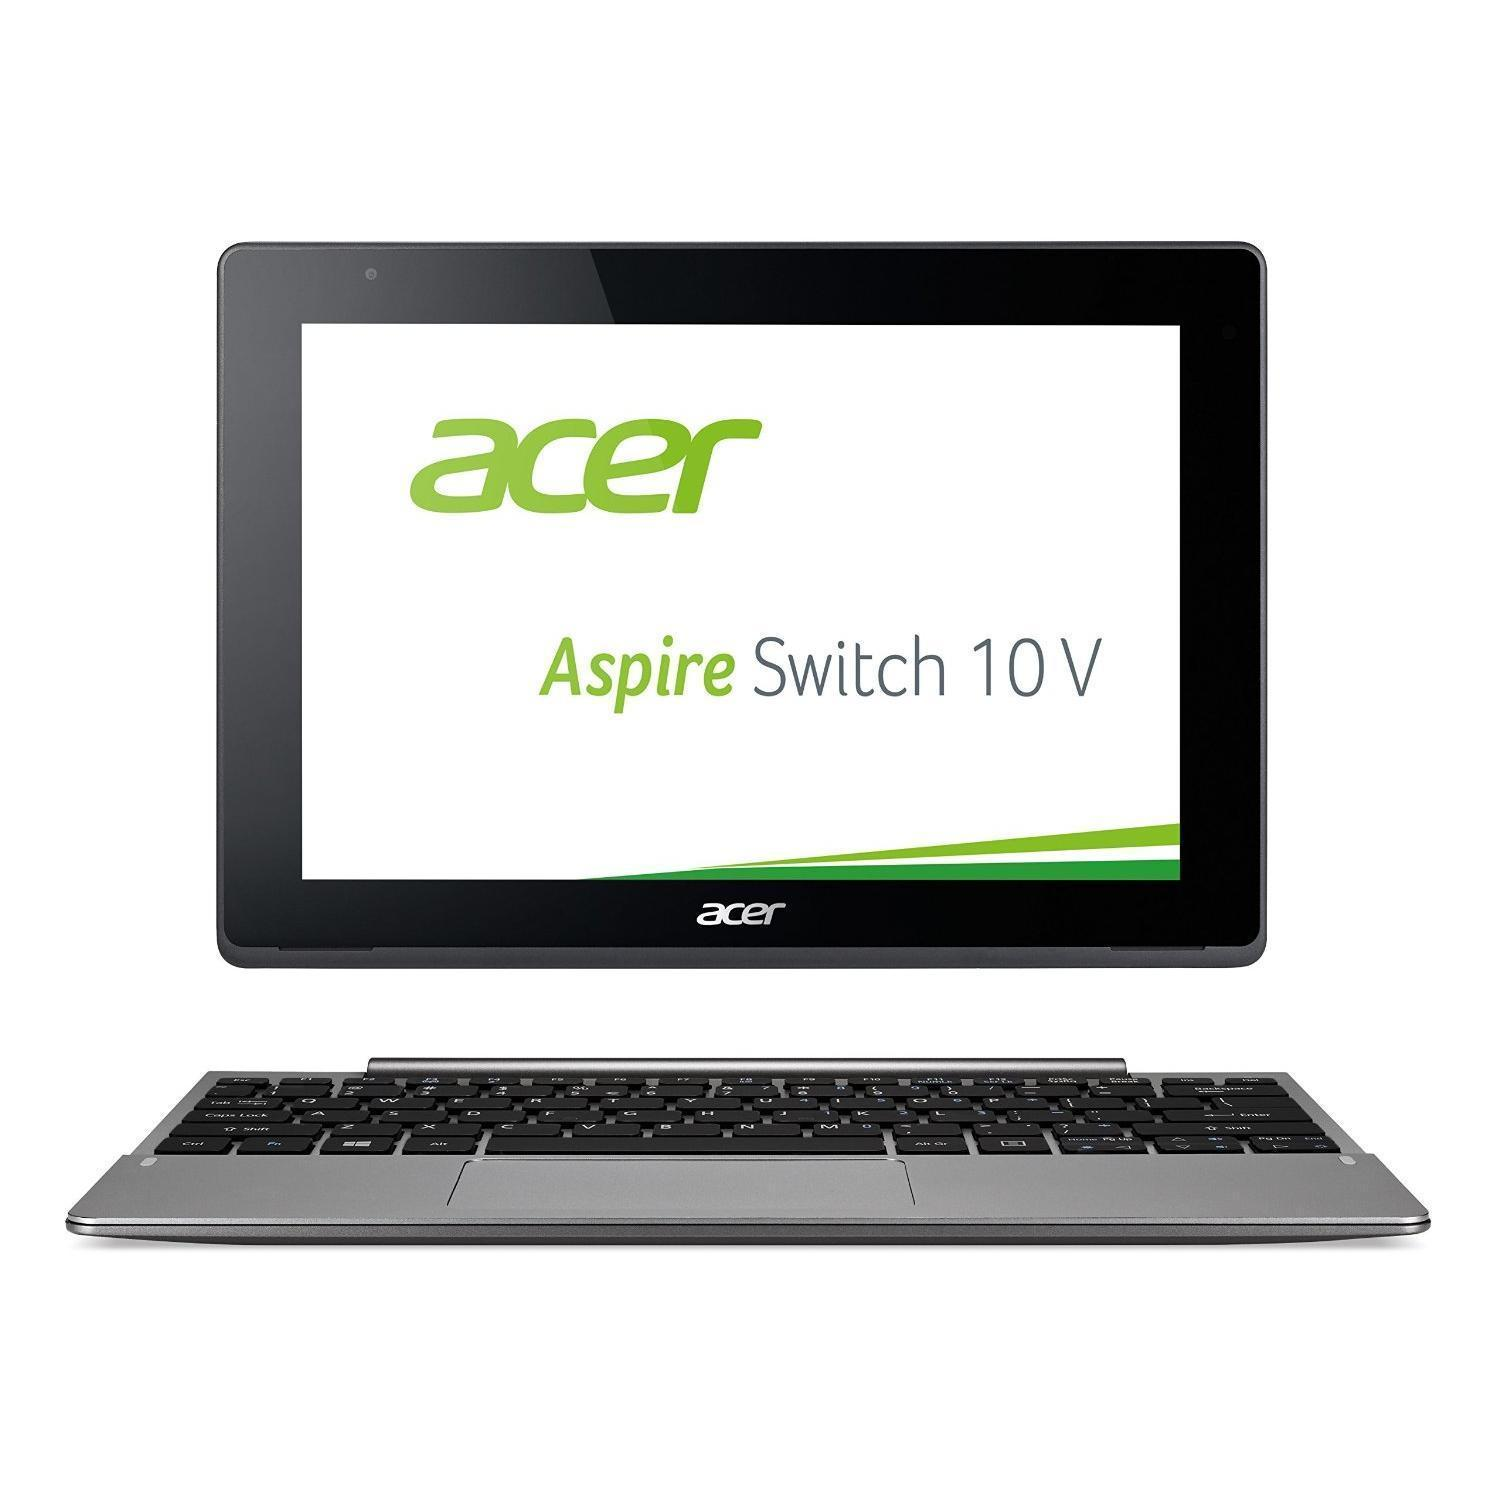 "Acer Aspire Switch 10 V 10,1"" Atom x5-Z8300  GHz  - HDD 32 Go - RAM 2 Go - QWERTZ"